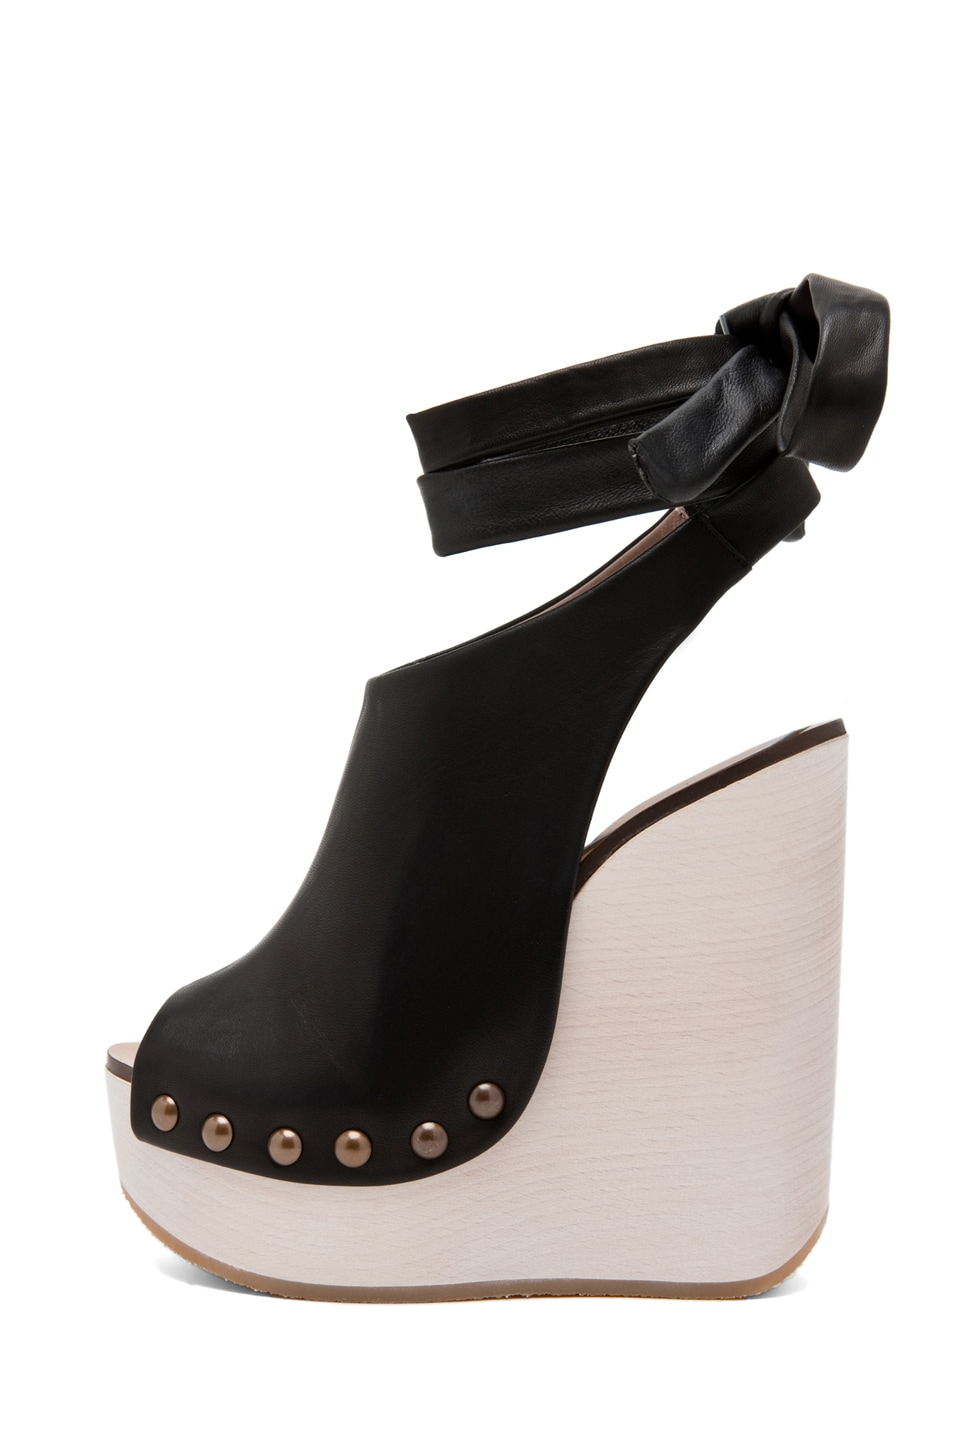 Image 1 of Chloe Leather Wrap Around Wedges in Black